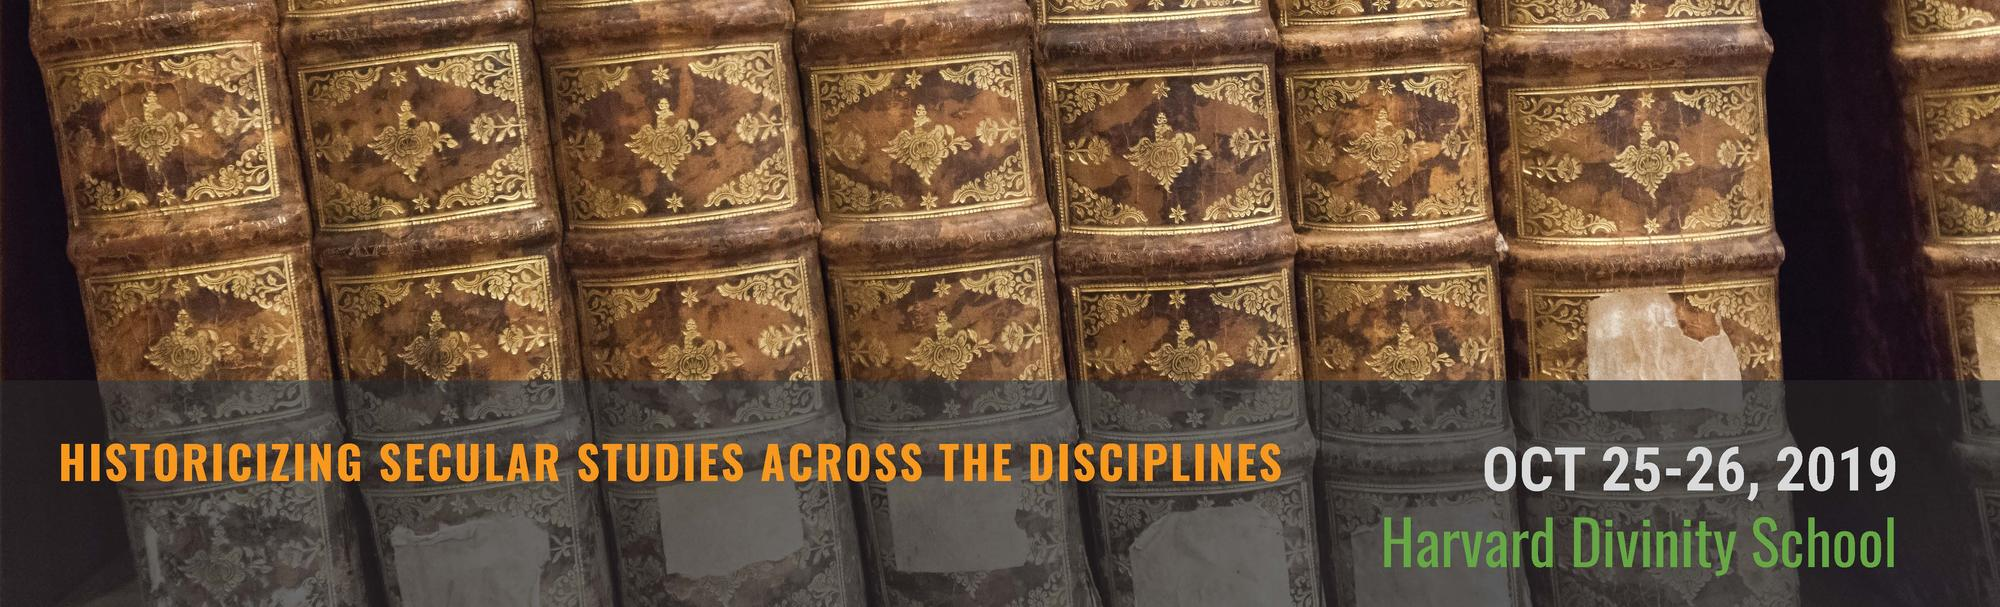 HISTORICIZING SECULAR STUDIES ACROSS THE DISCIPLINES